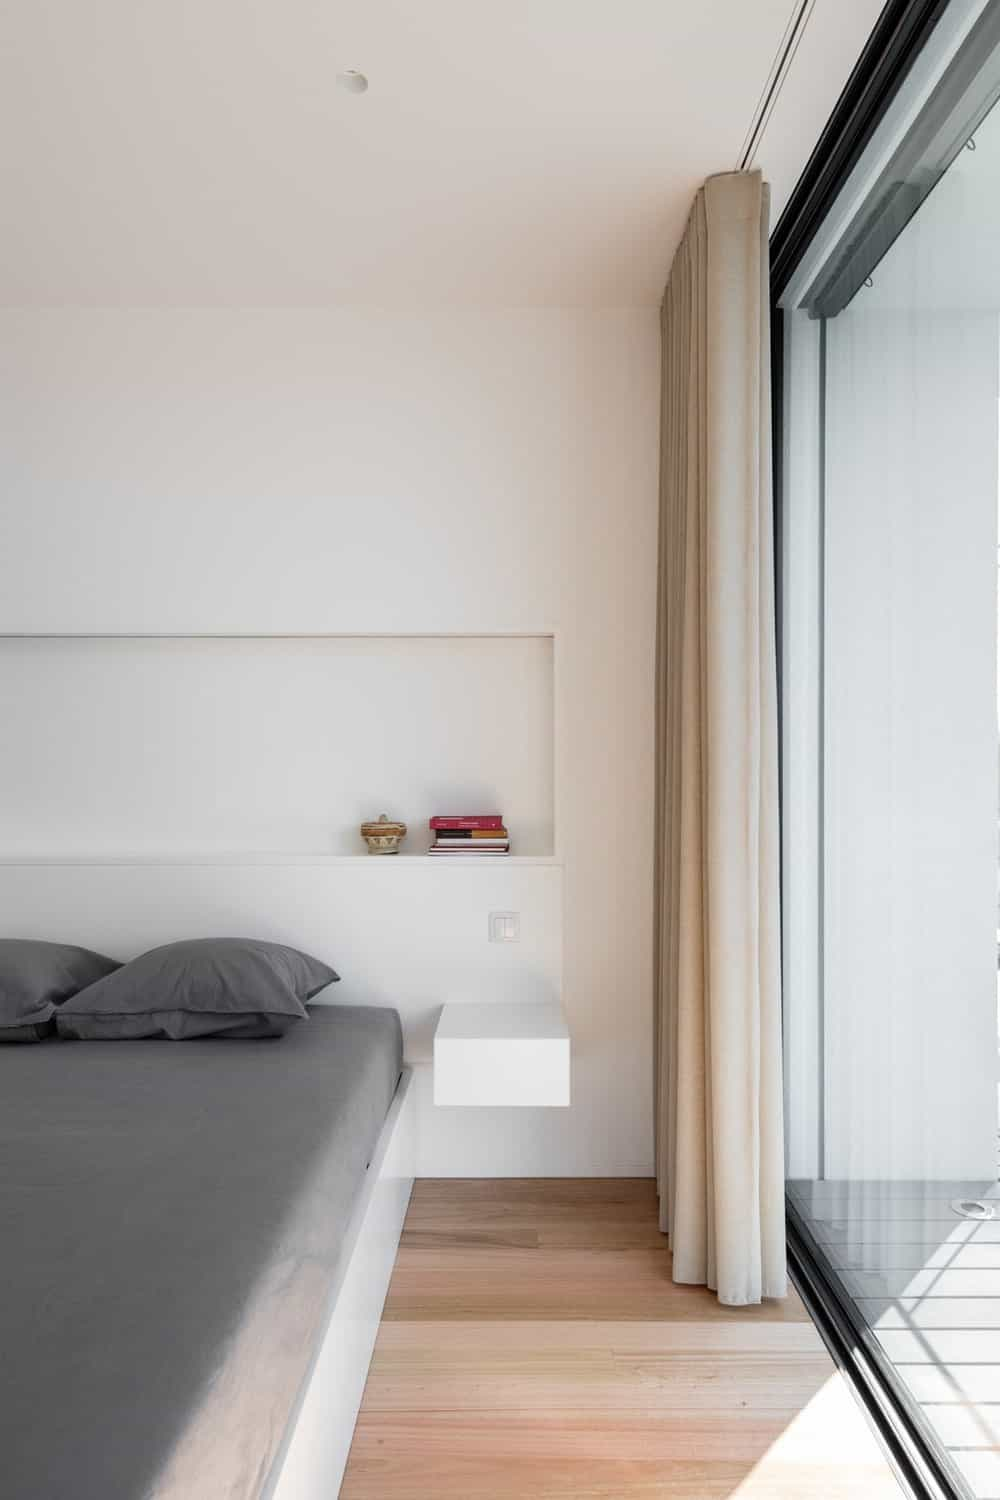 This is a close look at the minimalist bedroom that has a built-in white wooden platform bed topped with an alcove shelf and has a built-in white bedside table.